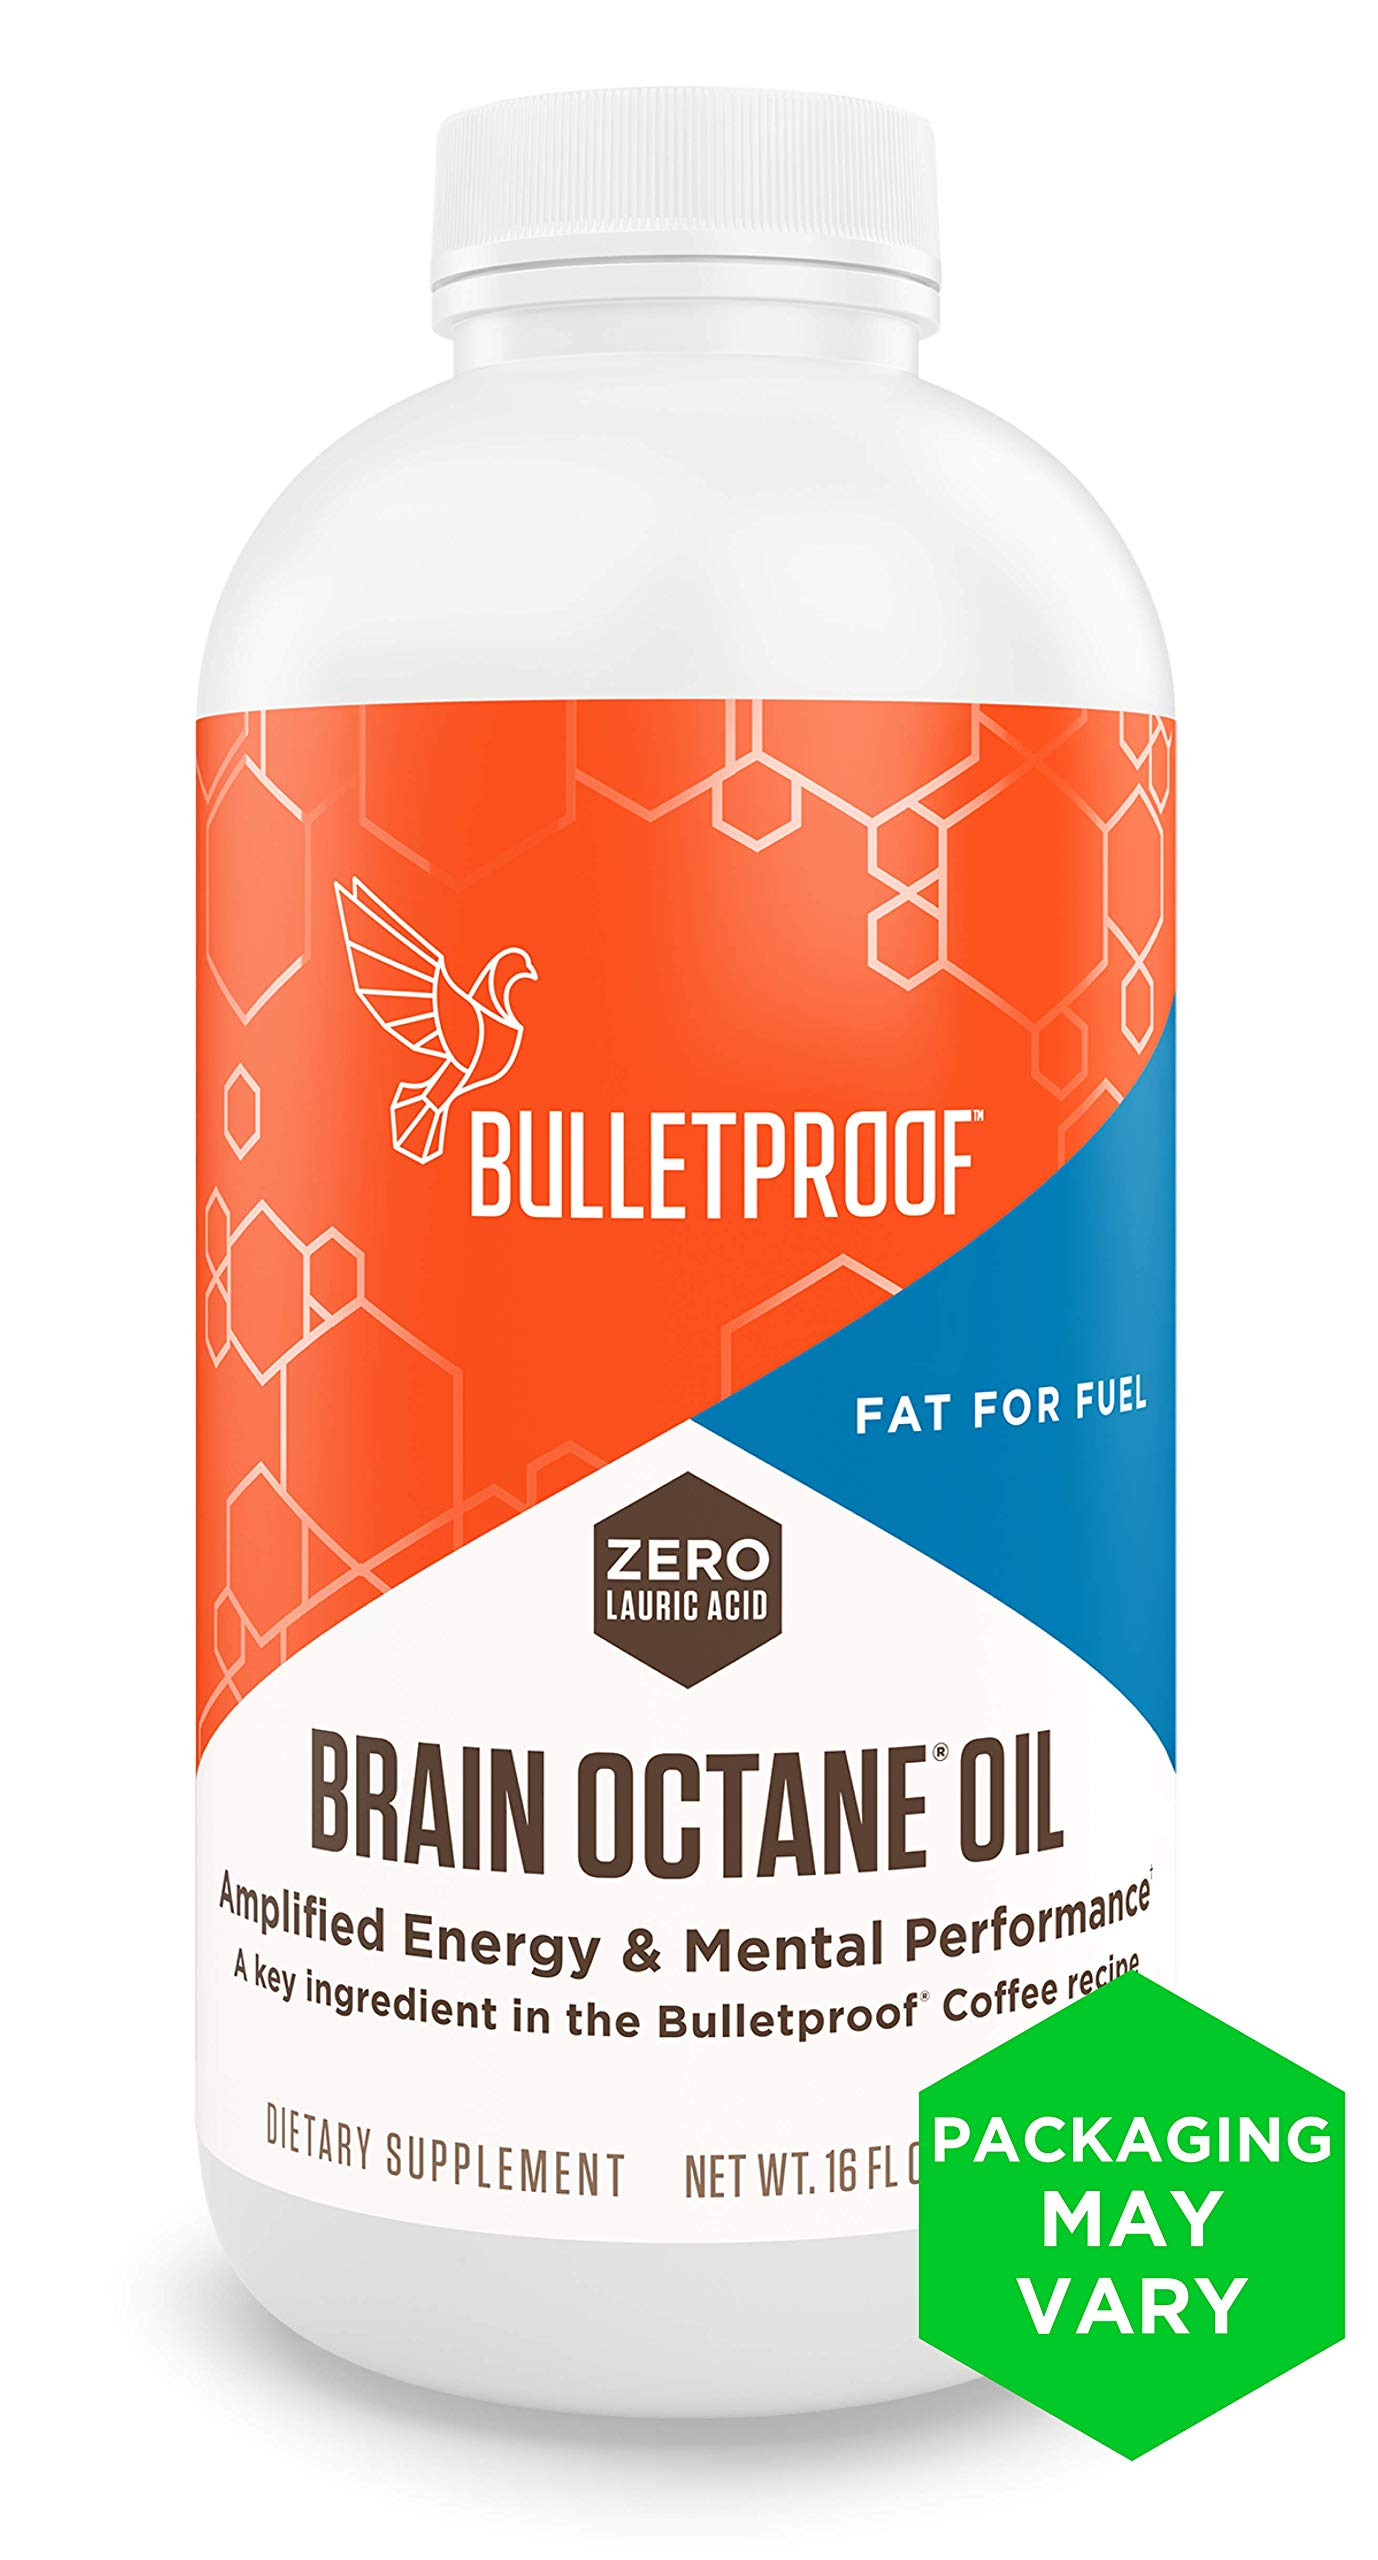 Bulletproof Brain Octane Oil, Reliable and Quick Source of Energy, Ketogenic Diet, More Than Just MCT Oil (16 Ounces) by Bulletproof